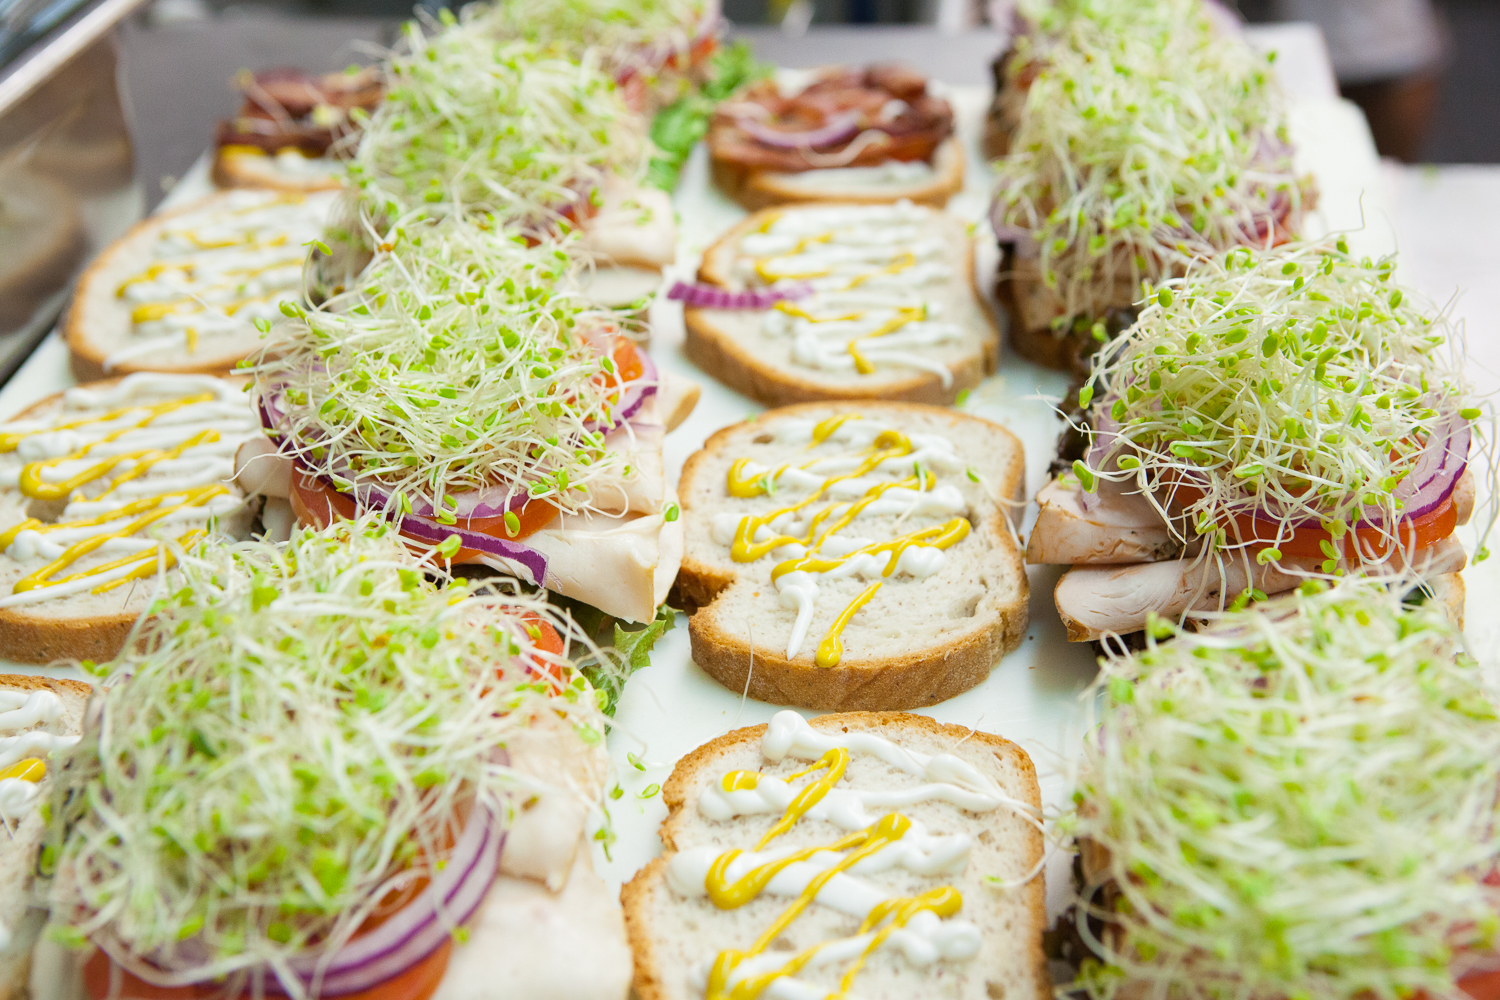 fresh-organic-sandwiches-prepared-by-mana-foods-deli.jpg